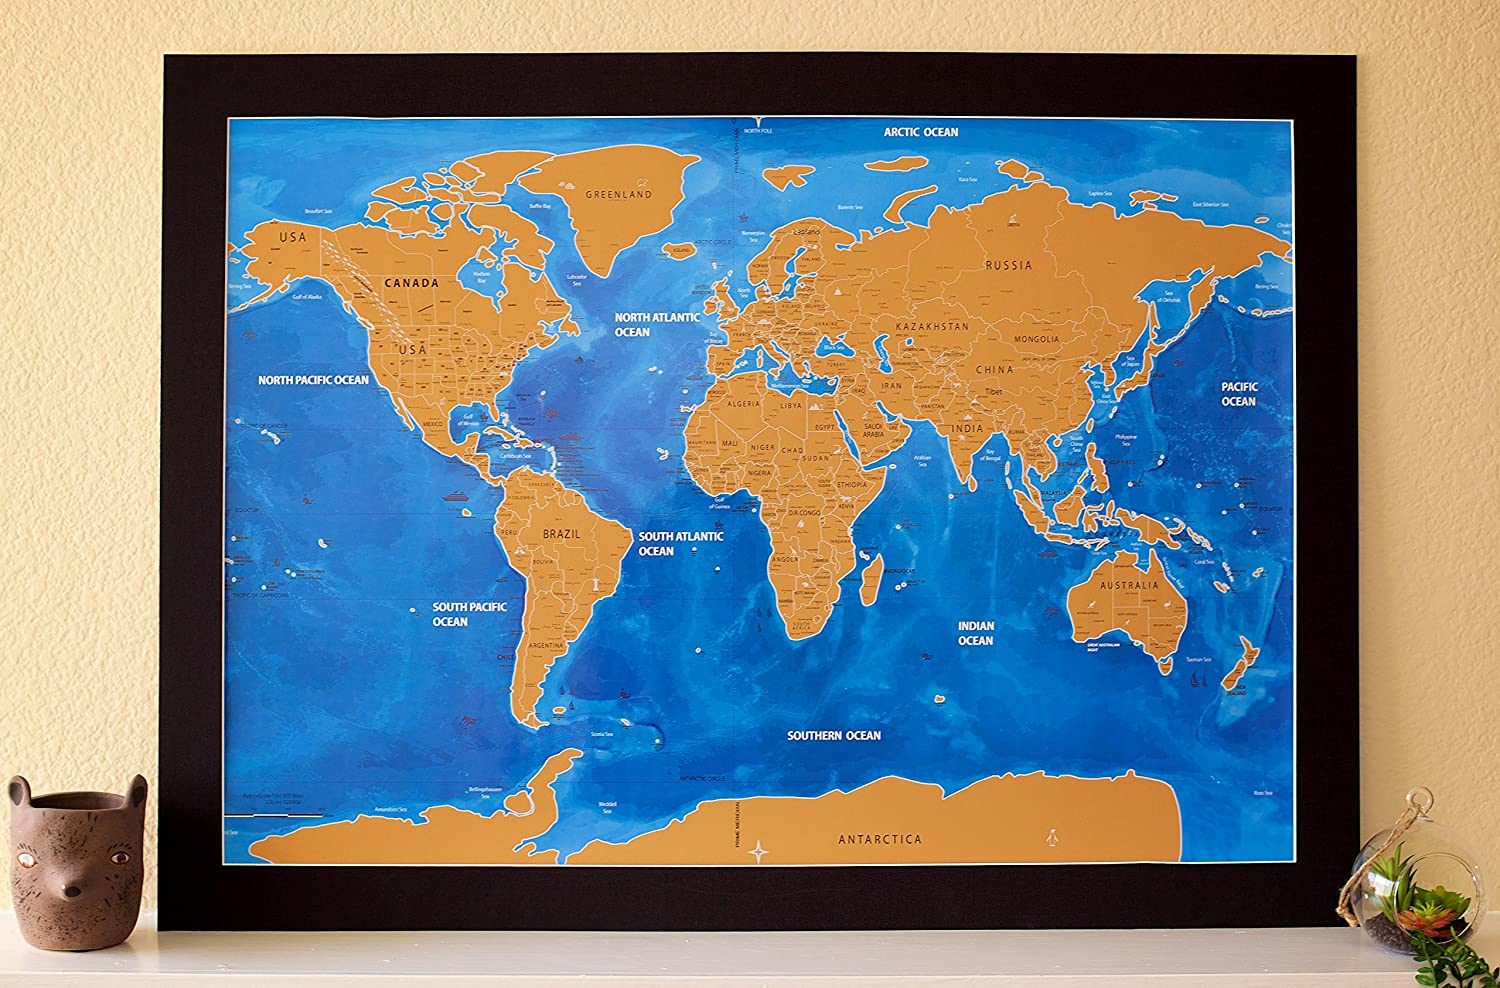 Amazon nomadik scratch off world map poster large ocean amazon nomadik scratch off world map poster large ocean blue edition artistic unique design underneath geographic icons office products gumiabroncs Choice Image